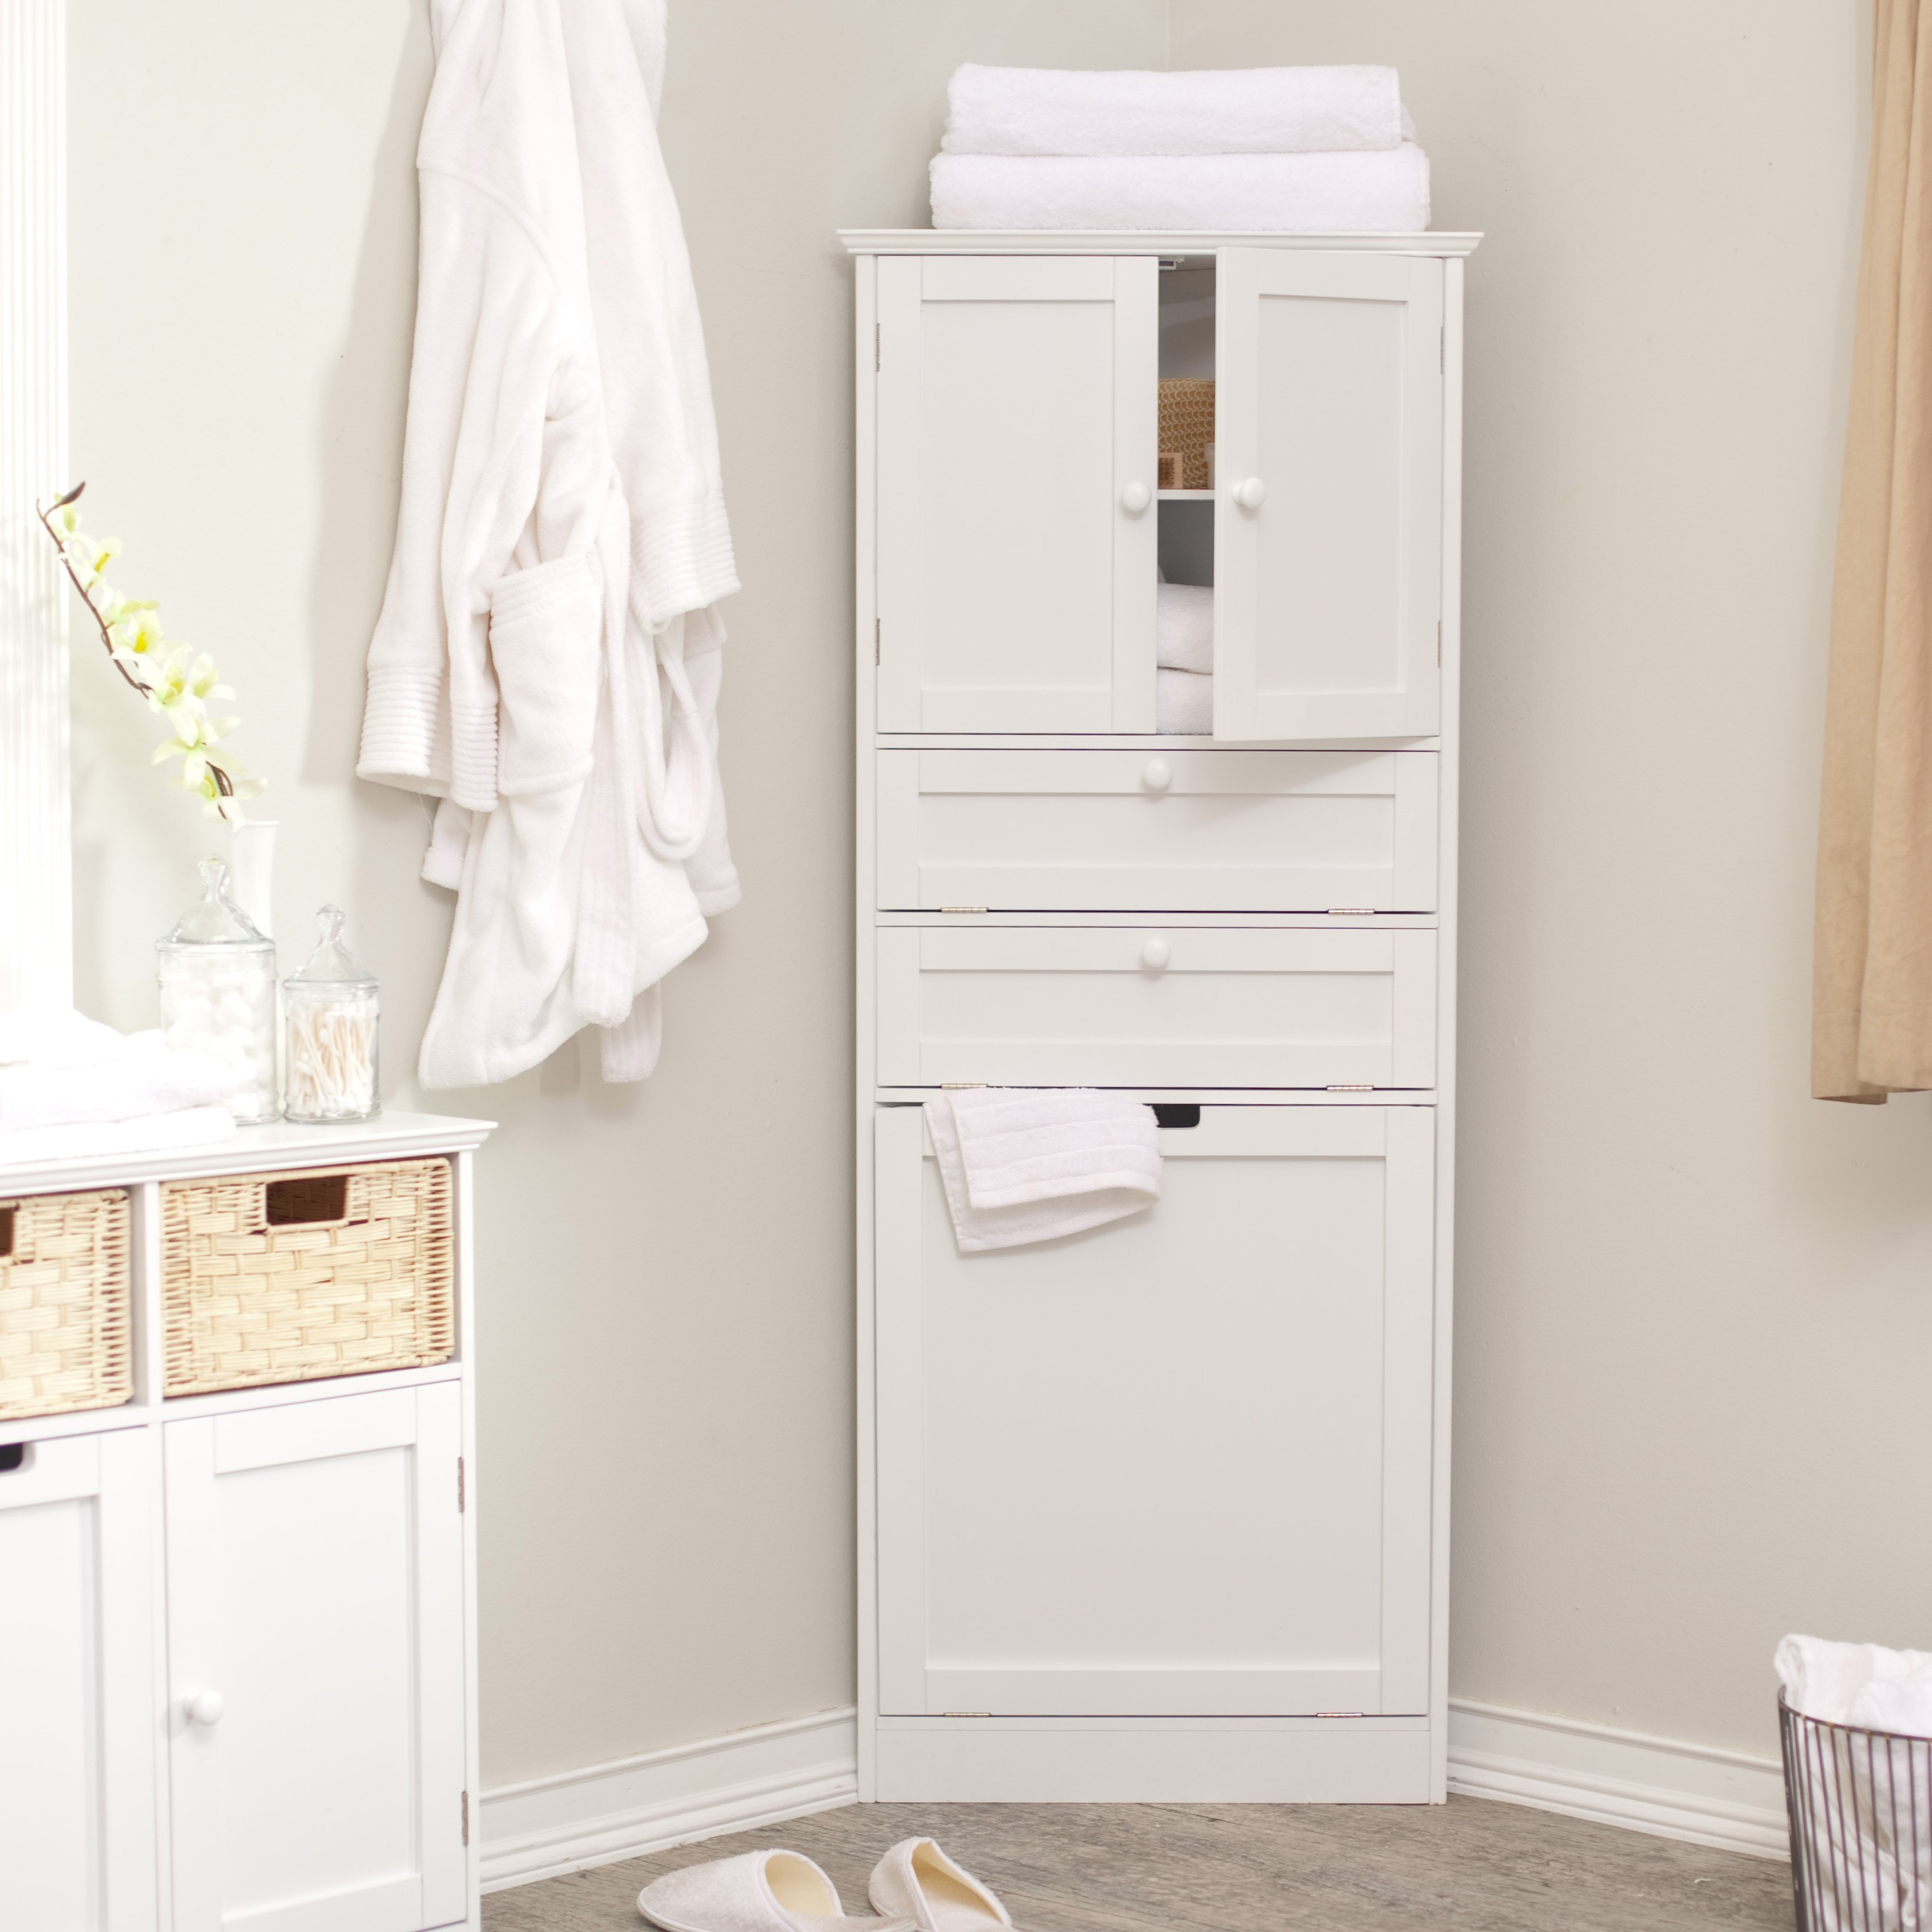 Free Standing Lockable Bathroom Cabinet